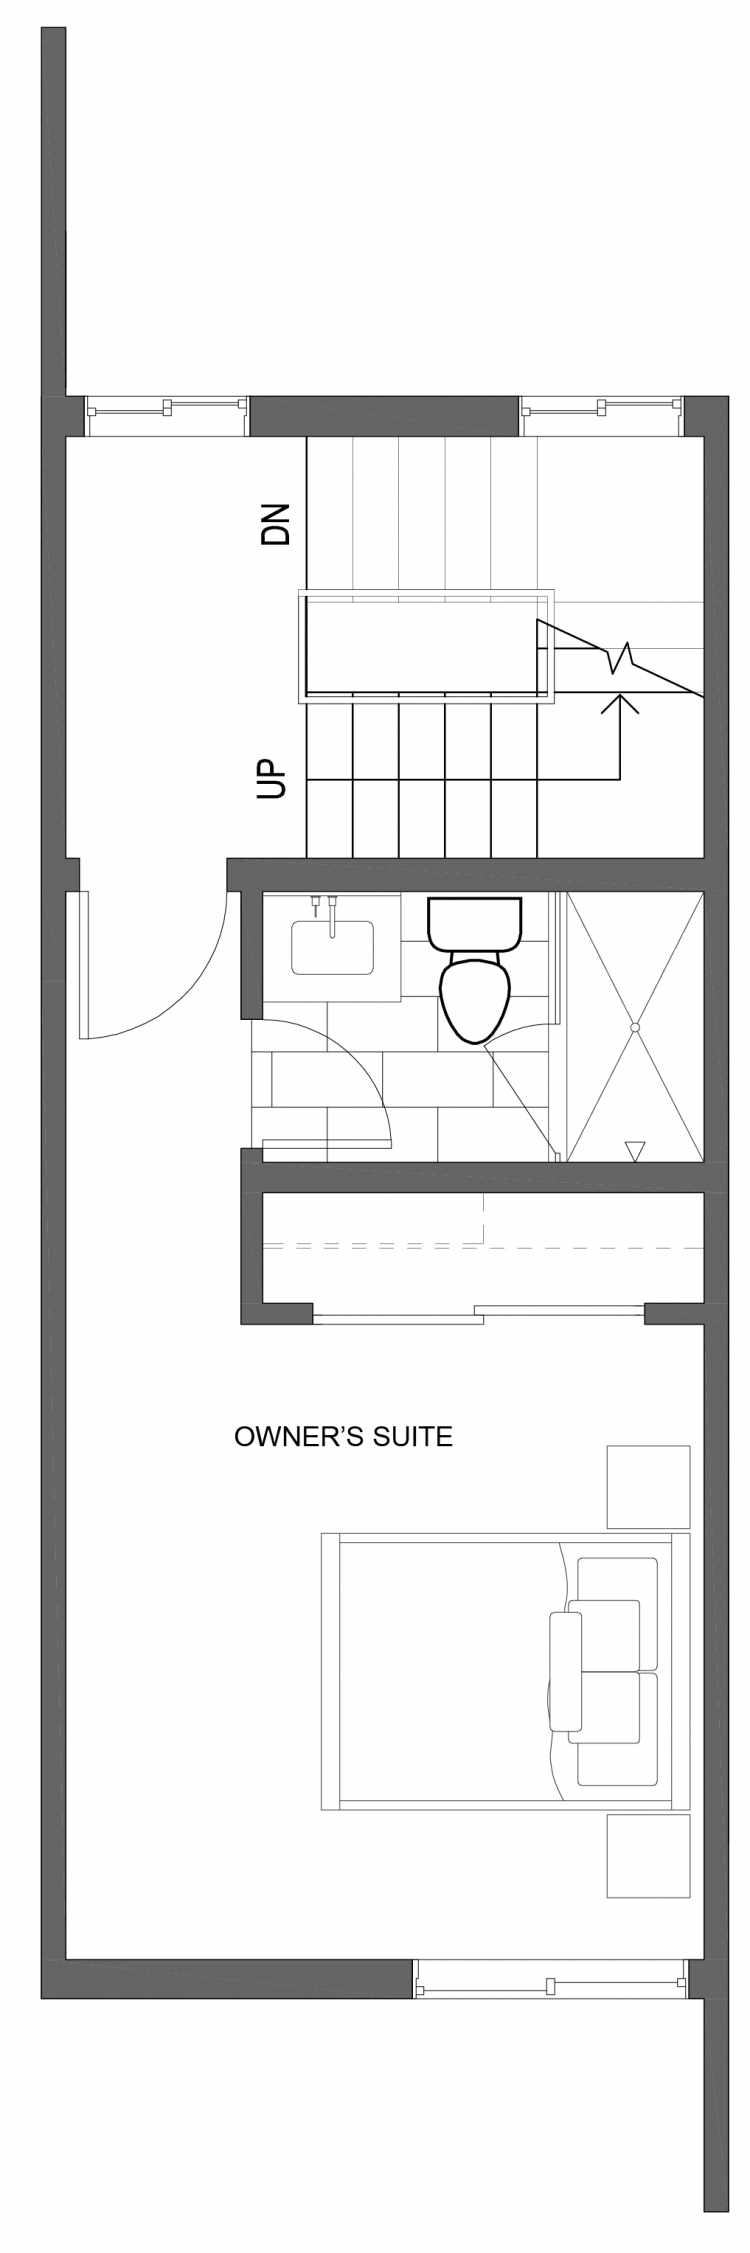 Third Floor Plan of 10423 Alderbrook Pl NW, One of the Zinnia Townhomes in the Greenwood Neighborhood of Seattle